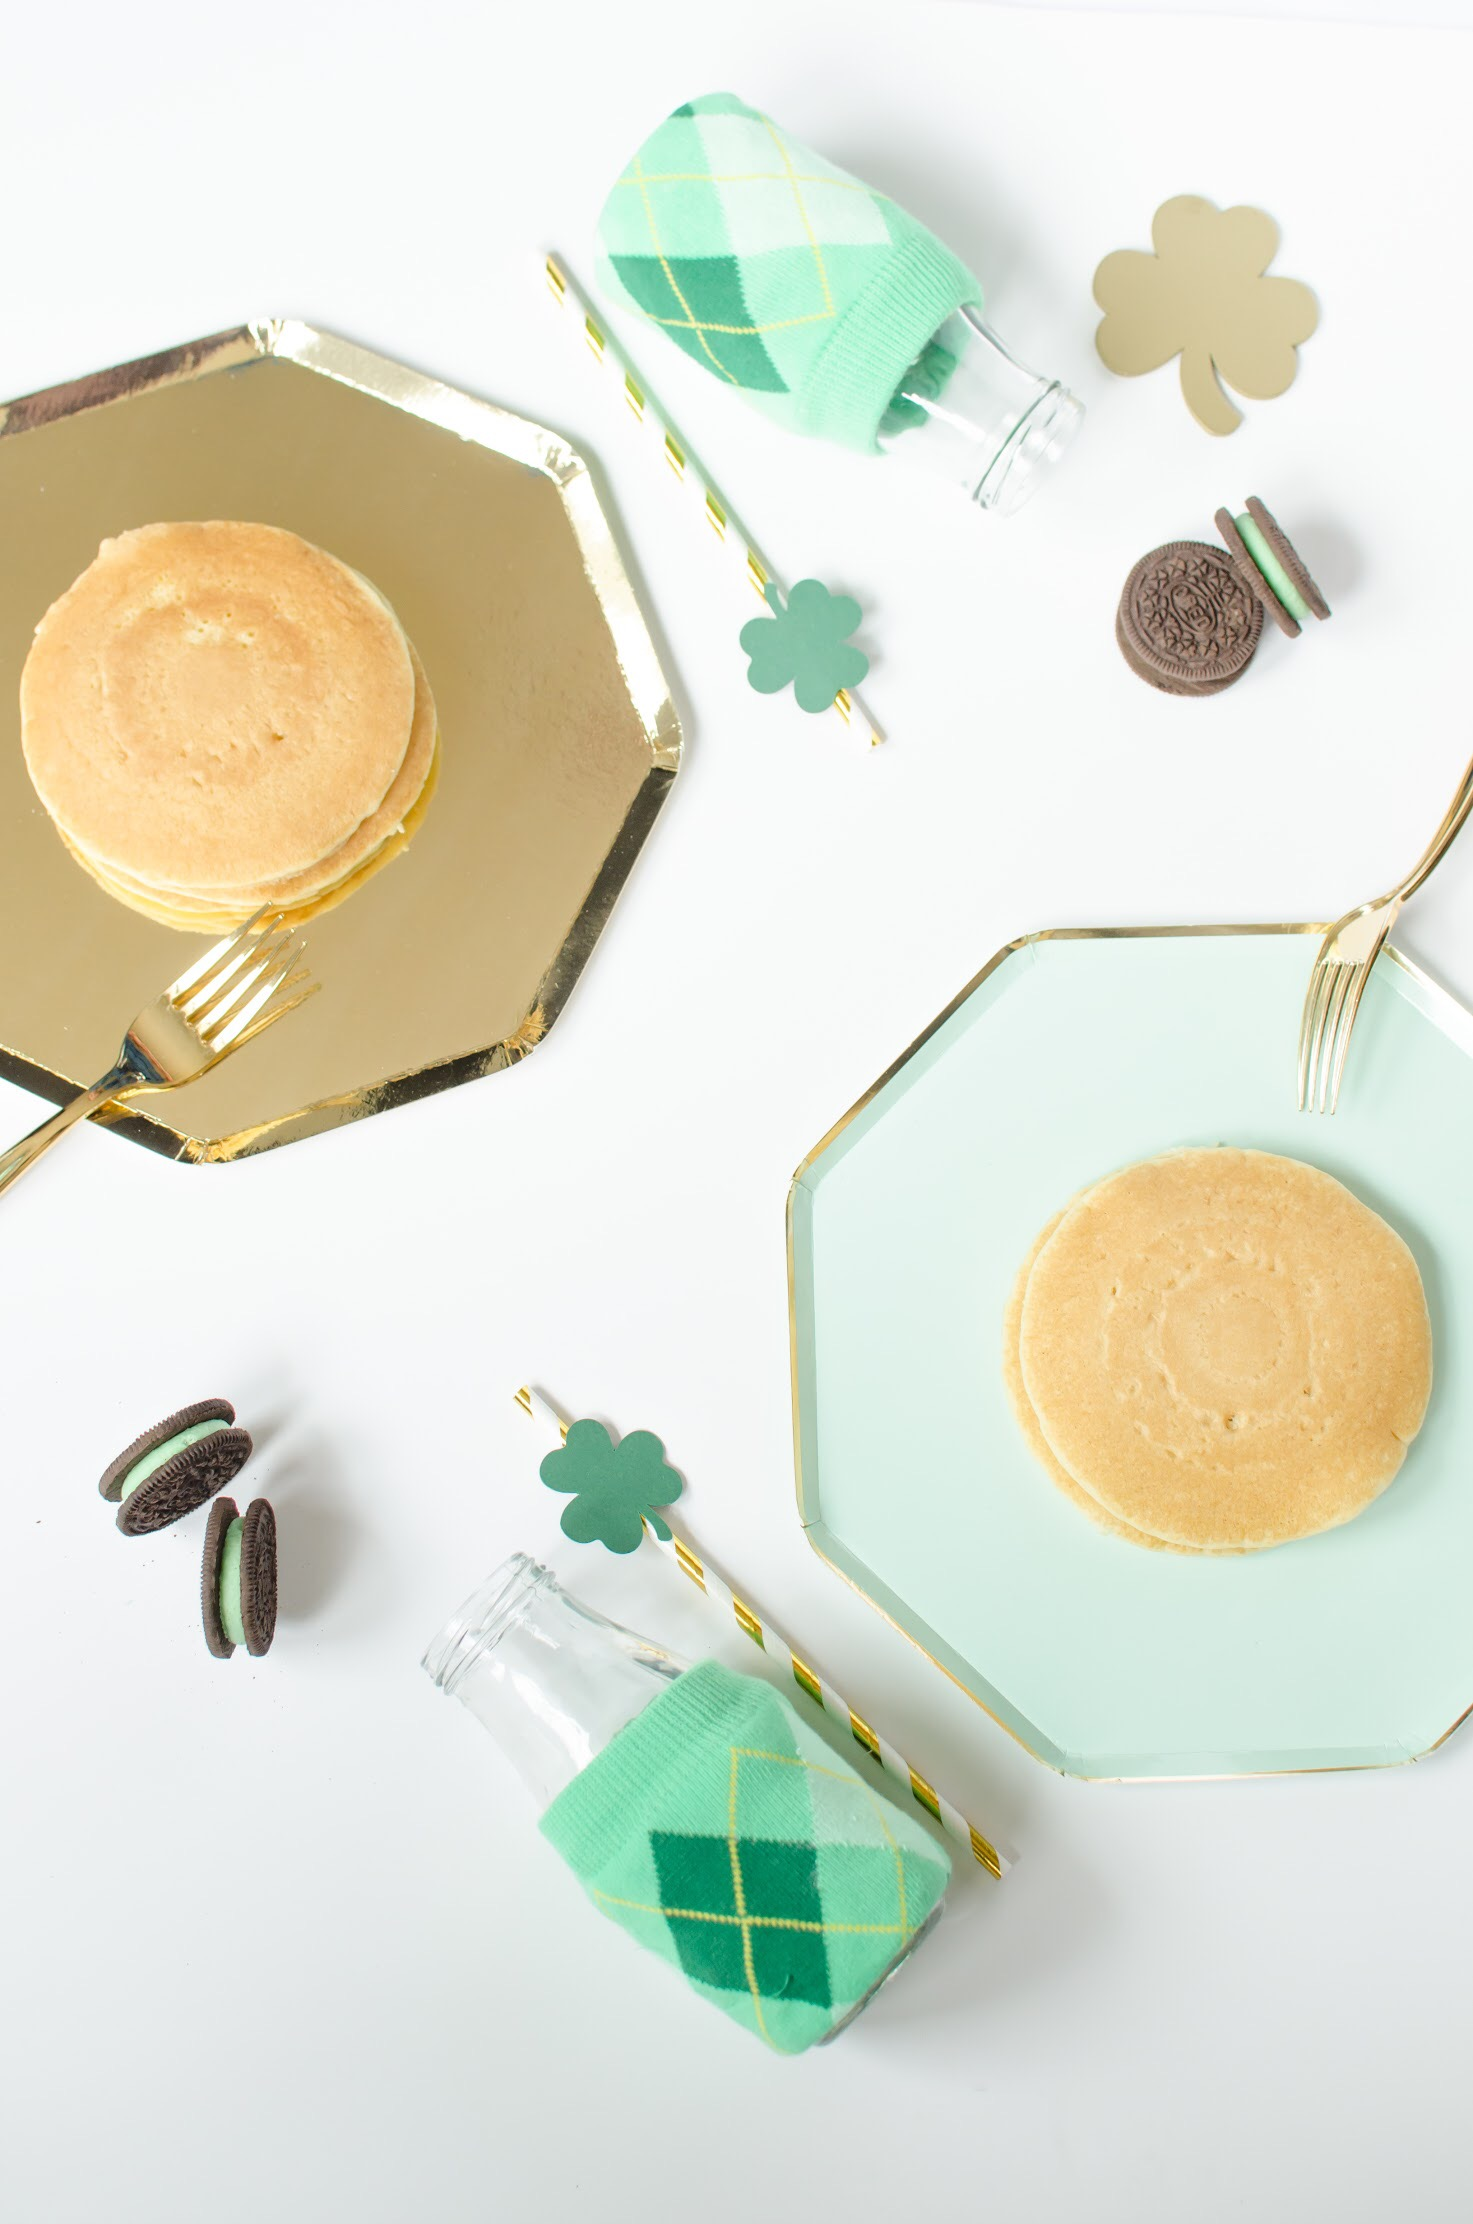 You can't go wrong with Green and Gold as a color scheme for a St. Patrick's Day celebration. See how you can use green and gold tableware throughout your party on Mint Event Design www.minteventdesign.com #partyideas #partydecorations #saintpatricksday #stpatricksday #tablesetting #tableware